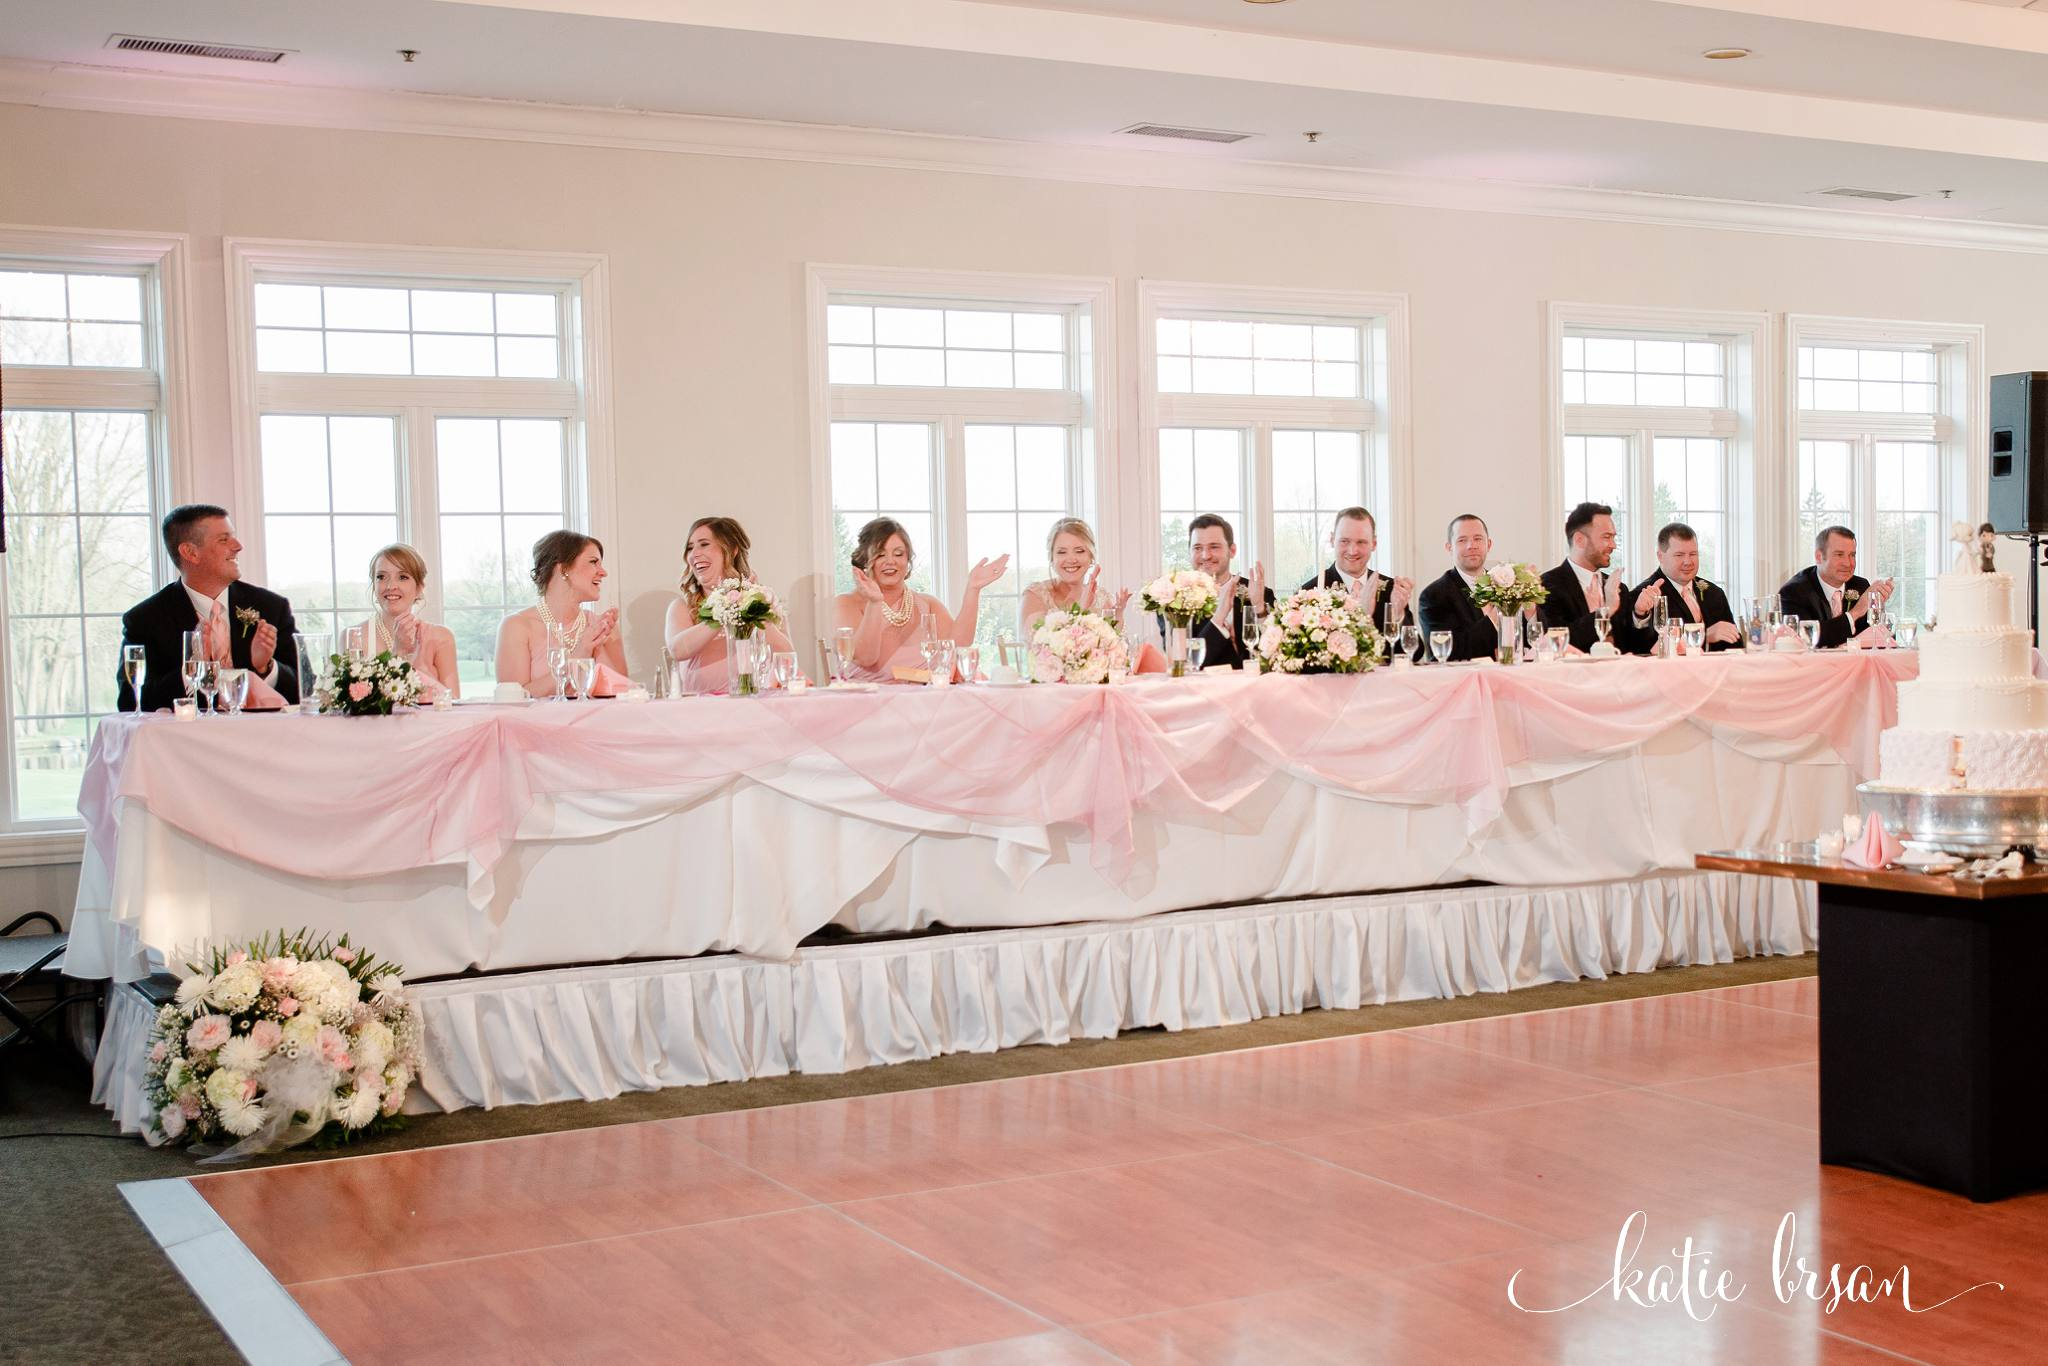 Mokena_Lemont_Wedding_Ruffled_Feathers_Wedding_1418.jpg